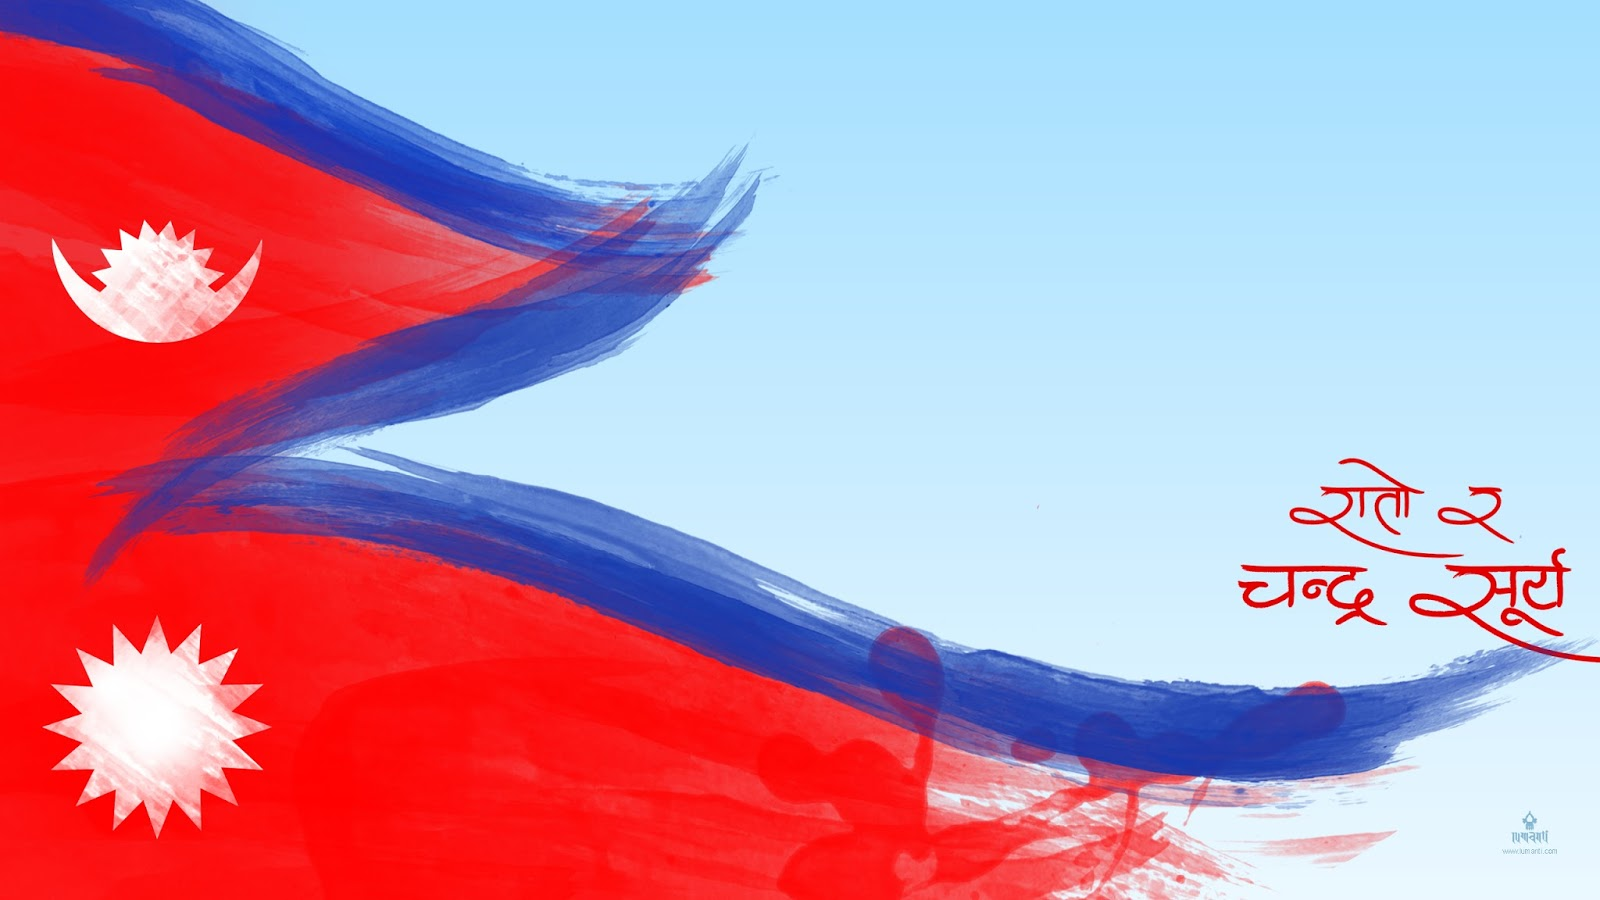 Imagehub nepal flag hd free download - Hd images download ...